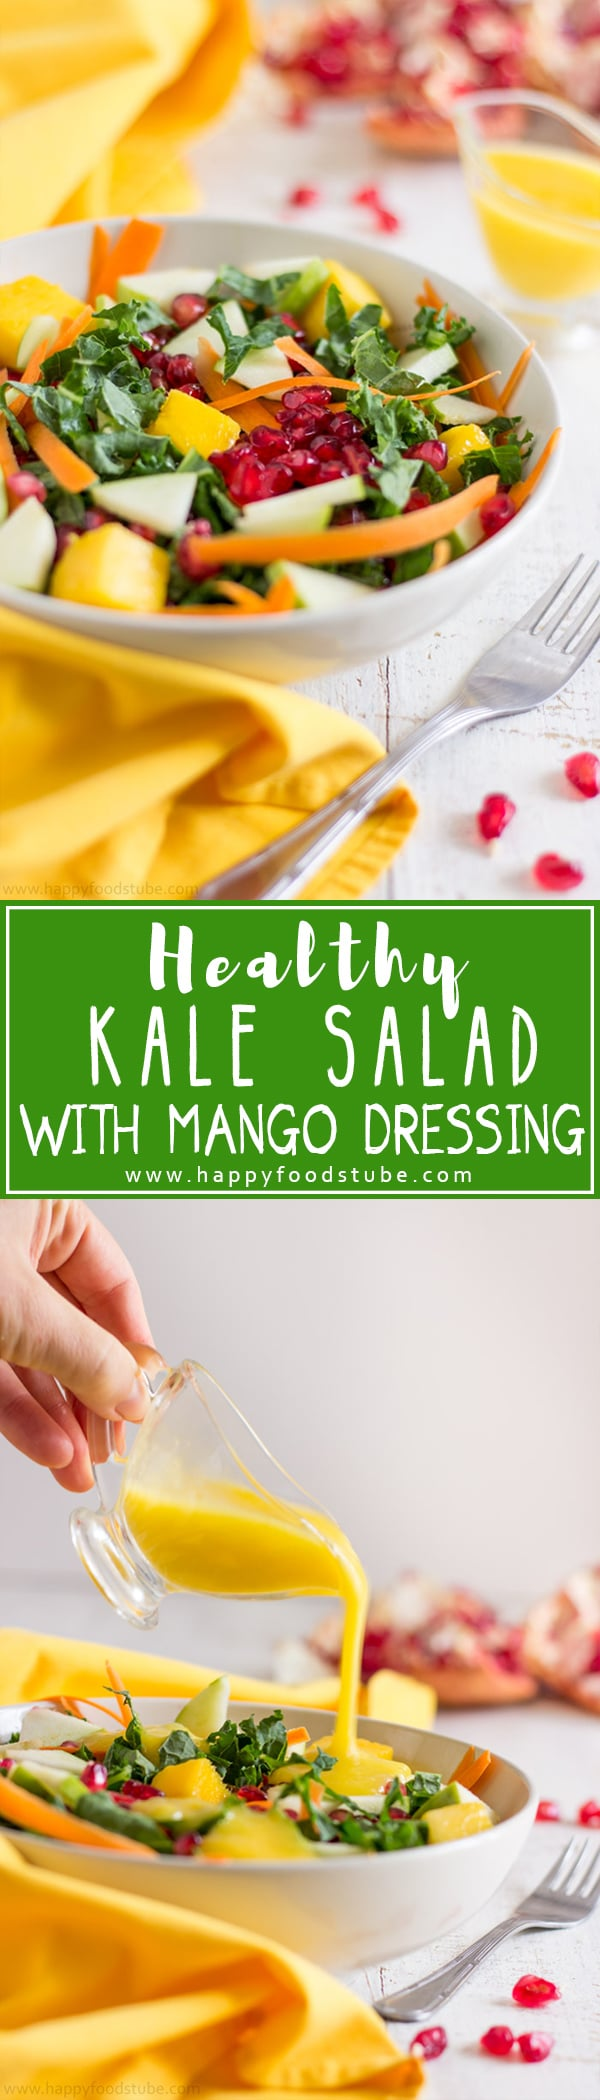 Healthy Kale Salad with Mango Dressing is perfect after Thanksgiving! It's light, ready in less than 15 minutes, nutritious & easy to make! | happyfoodstube.com